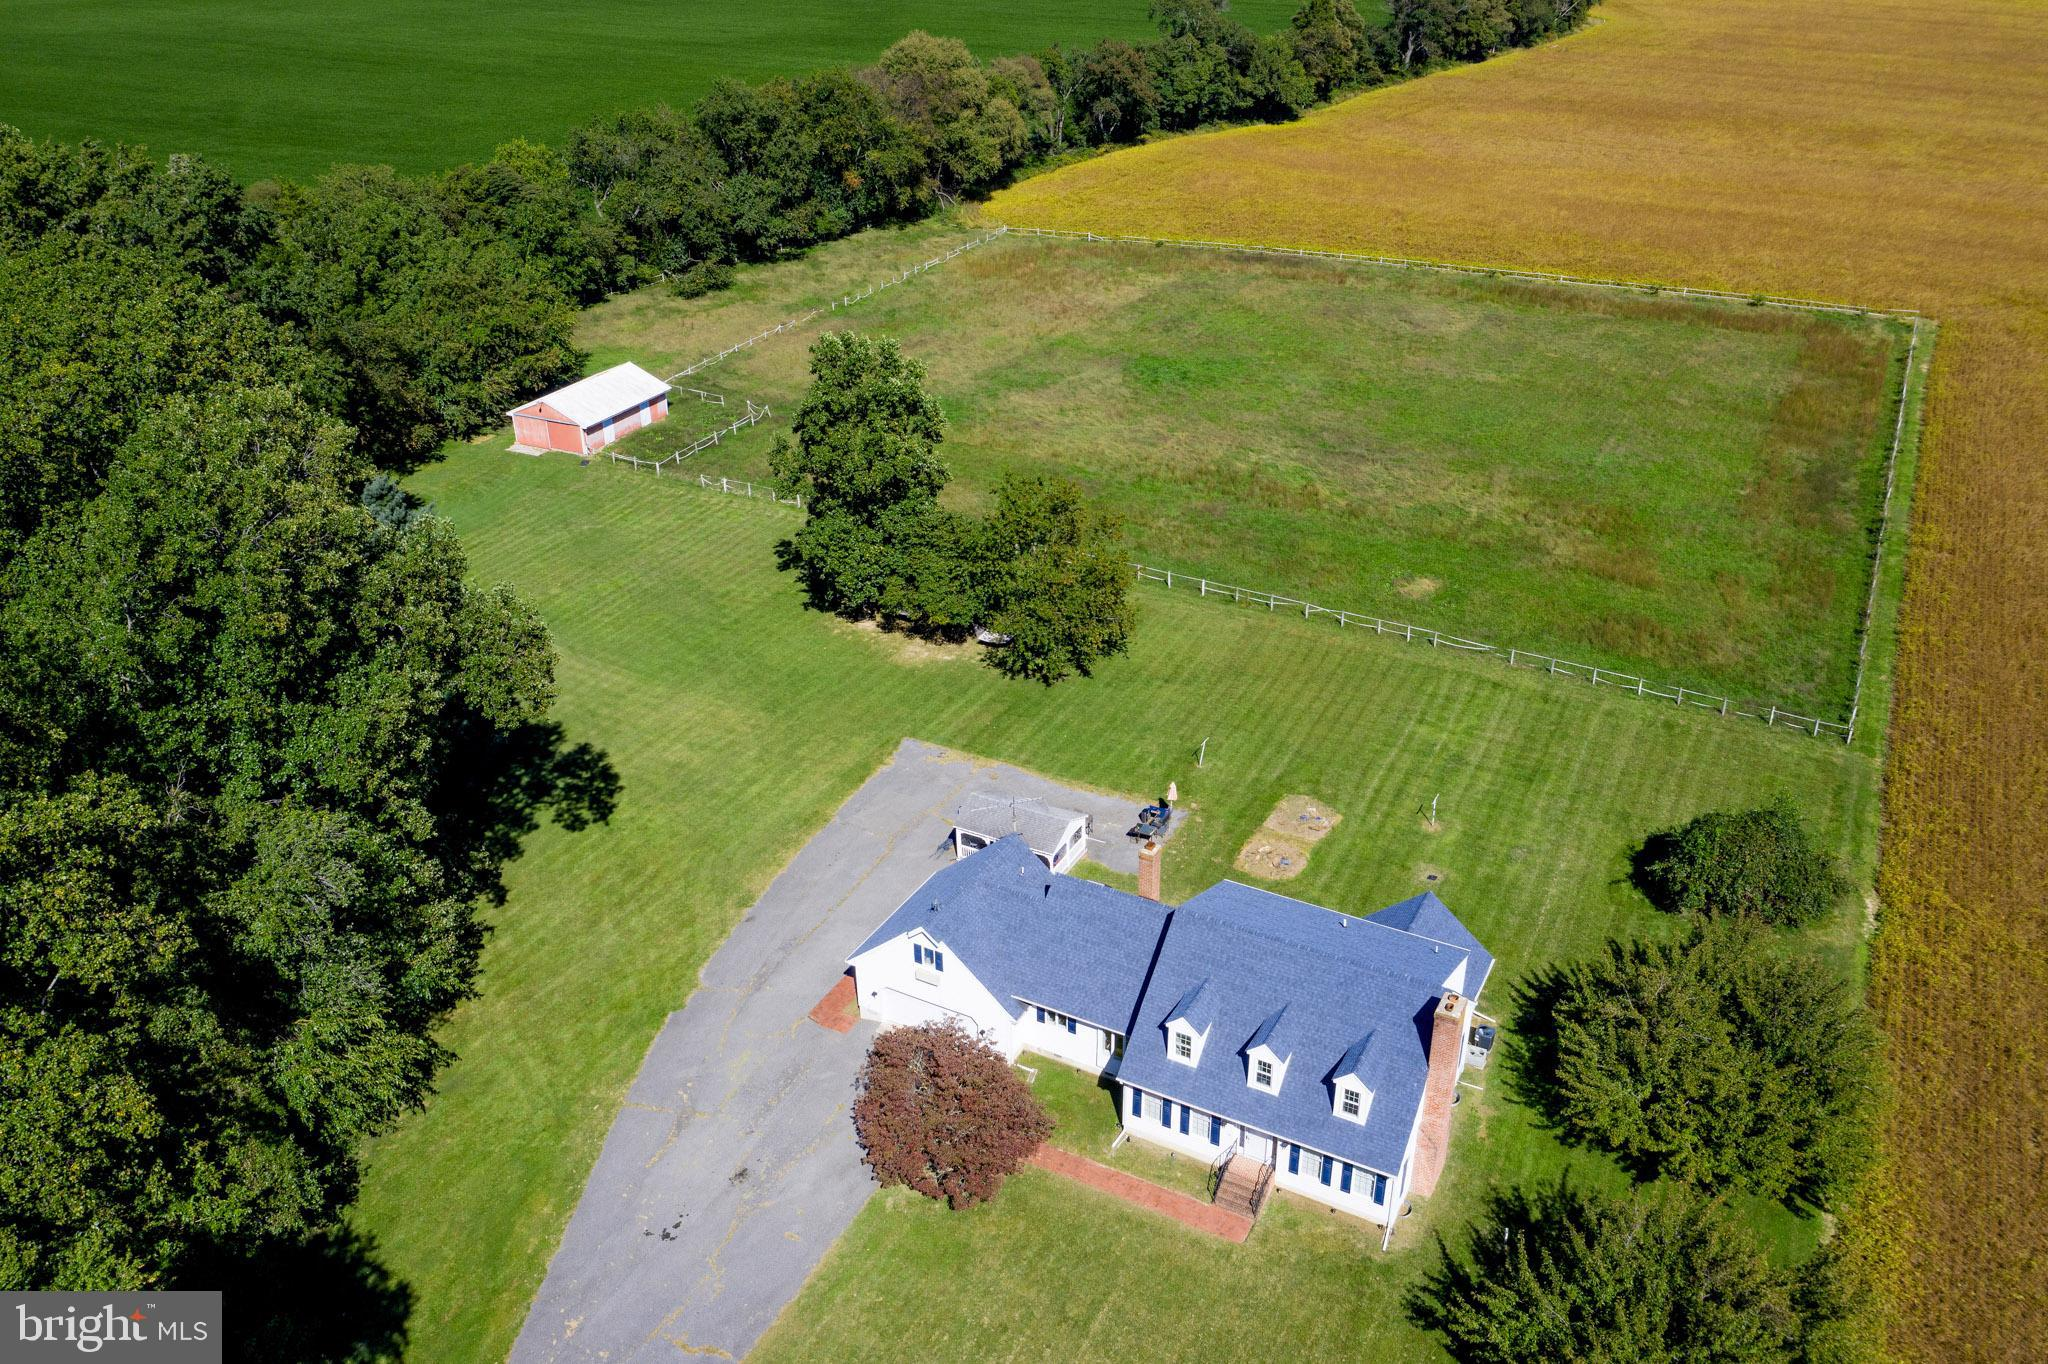 Welcome Home... This wonderful Home sits on 5 cleared Acres and is accompanied by 2 pastures and a 3 Stall Metal Building. Come on in... The beautiful wood floors & staircase will wow you upon entry! The kitchen is a cooks delight, as it has all of the upgraded finishes including soft close cabinets, granite countertops, luxury vinyl and stainless steel appliances. Off of the kitchen you will find a great sized  dining room with built ins. Both the living room and family room are equipped with wood burning fireplaces to keep you cozy in the winter. There are beautiful exposed beams that run the length of the family room. Kick back and enjoy the views of your pastures from your 4 seasons room, which sits right off of the main floor office. Upstairs you will find the 3 bedrooms, the Primary has a private bath. Bonus...  tucked away over the Garage there is a room & full bathroom - Wow! The basement is wide open and ready for you to make it your own. So, I have to ask...  are looking for space & privacy with the convenience of close shopping... Then look no further!  Call for your showing today :0)